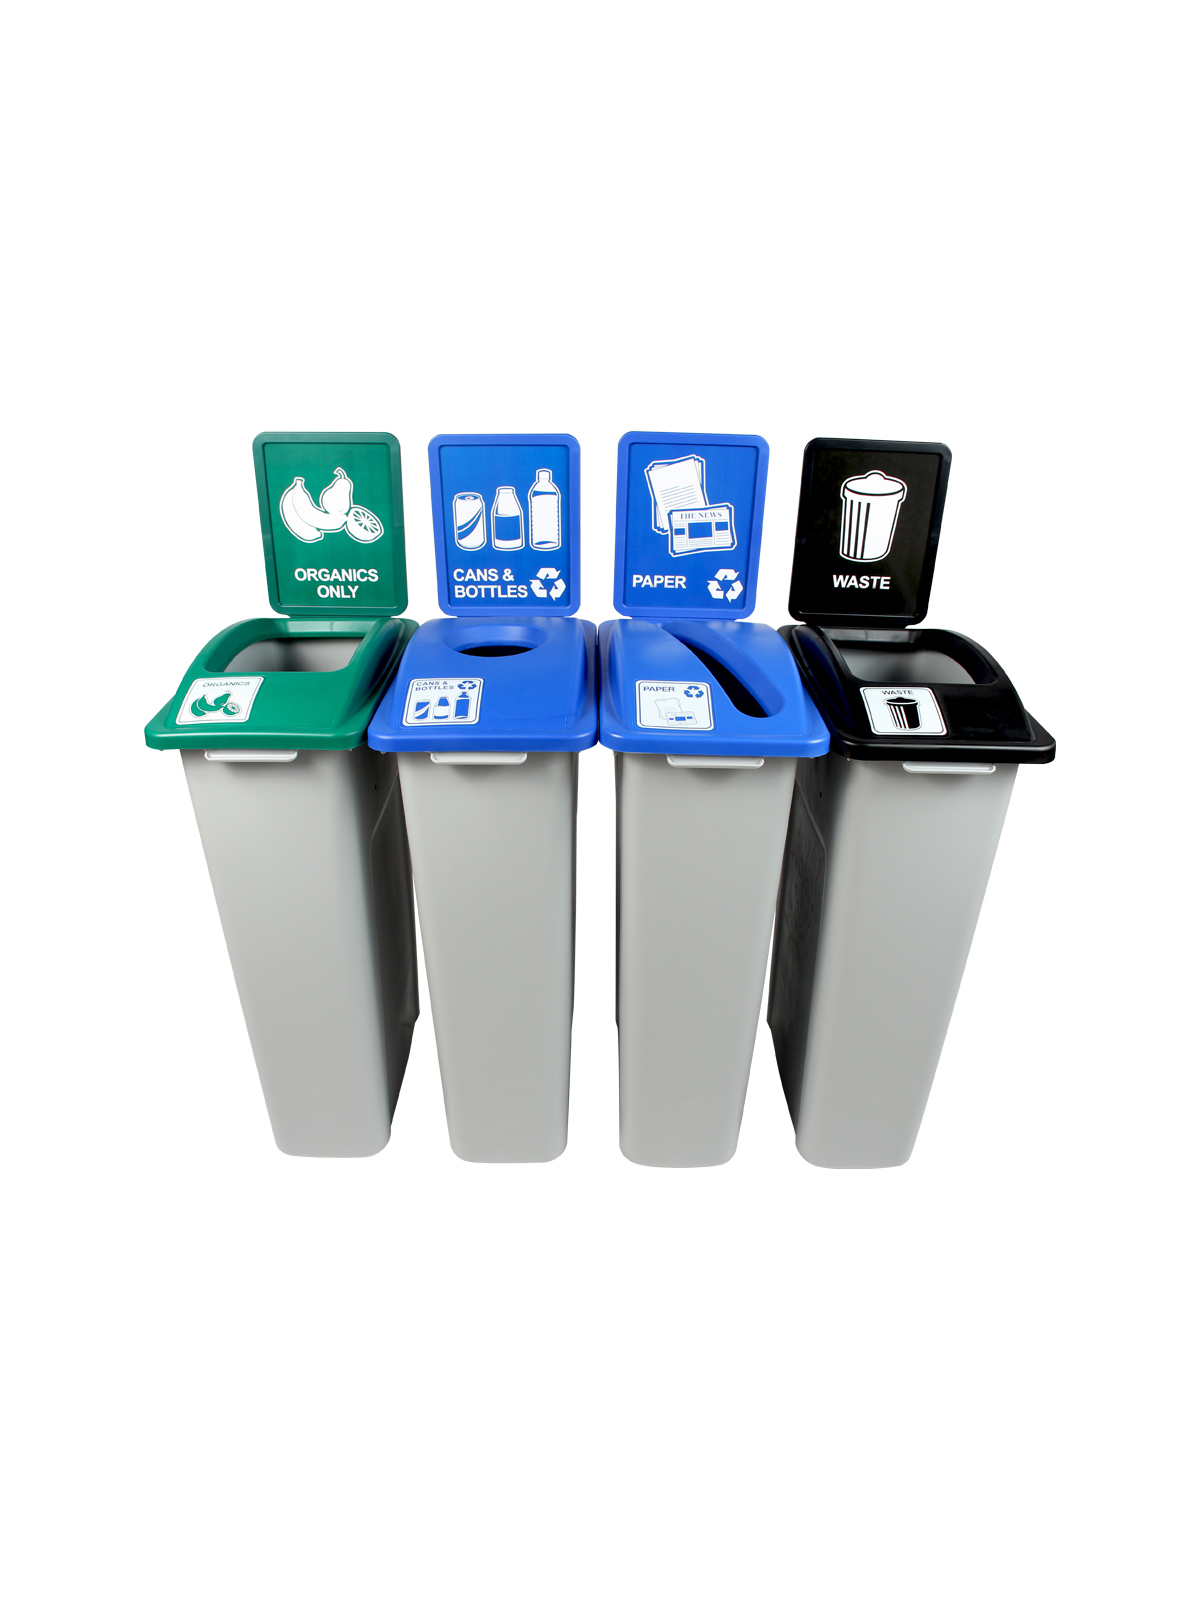 WASTE WATCHER - Quad - Cans & Bottles-Paper-Organics-Waste - Circle-Slot-Full - Grey-Blue-Blue-Green-Black